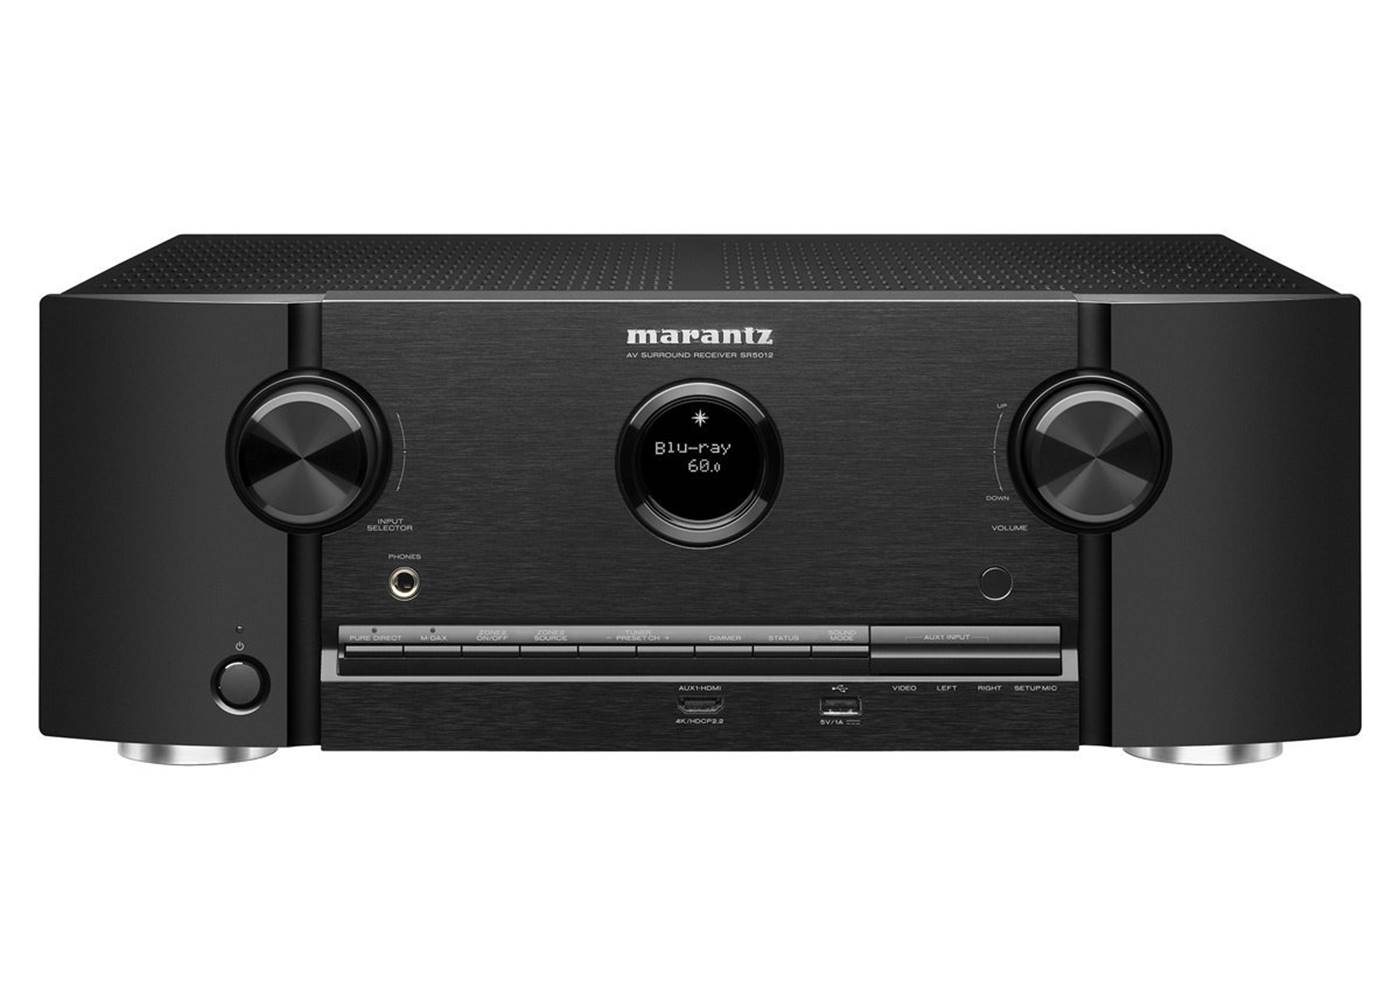 Marantz SR5012 Surround Sound Receiver